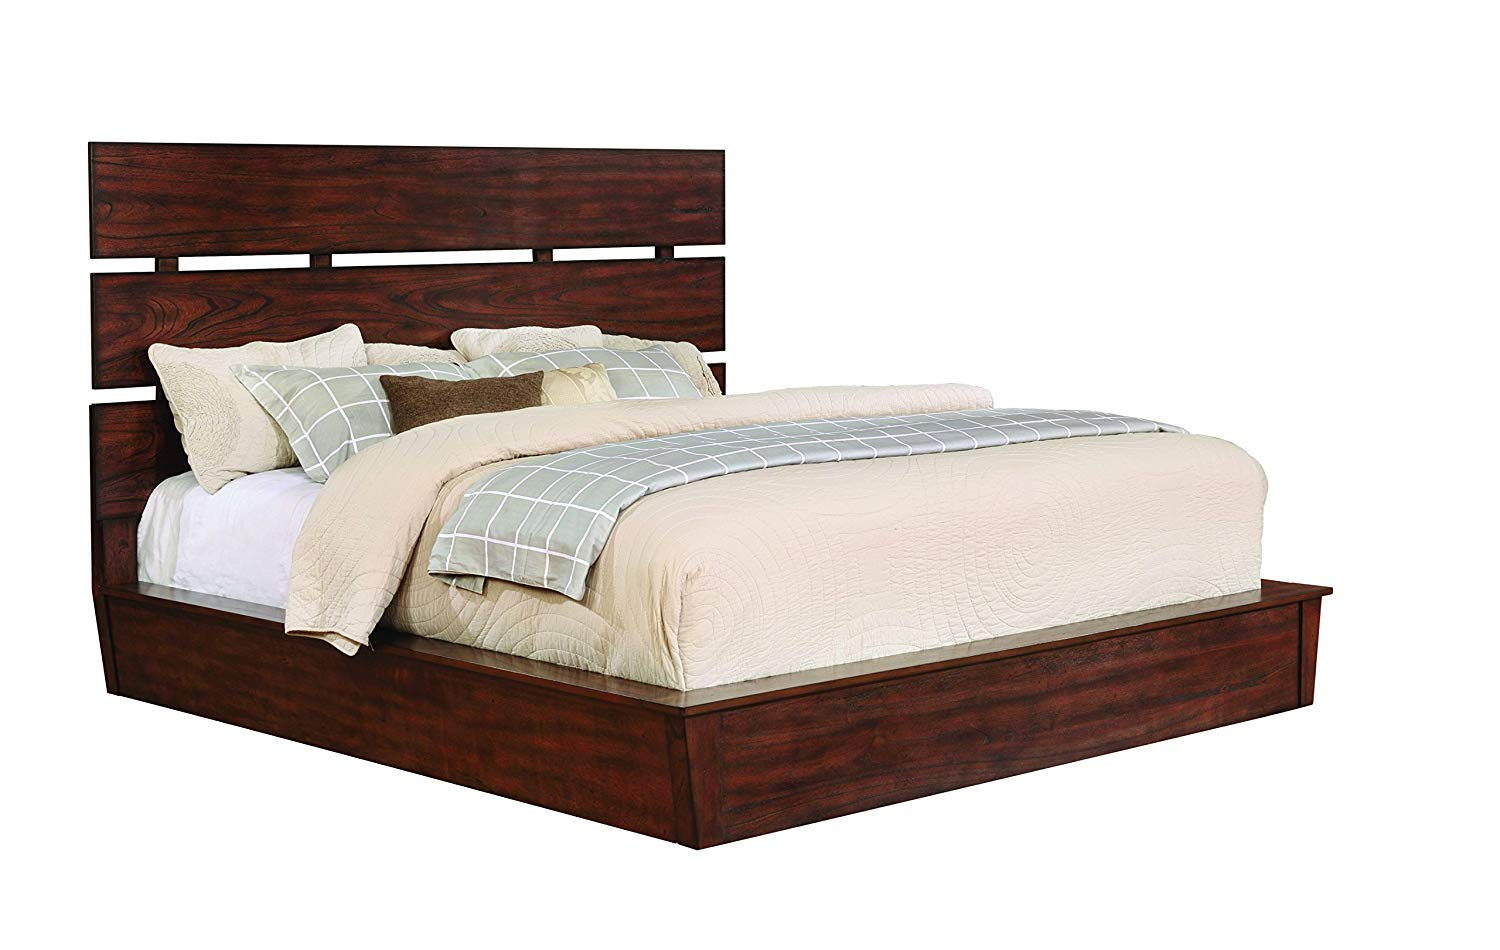 Artesia Queen Platform Bed with Plank Headboard Dark Cocoa